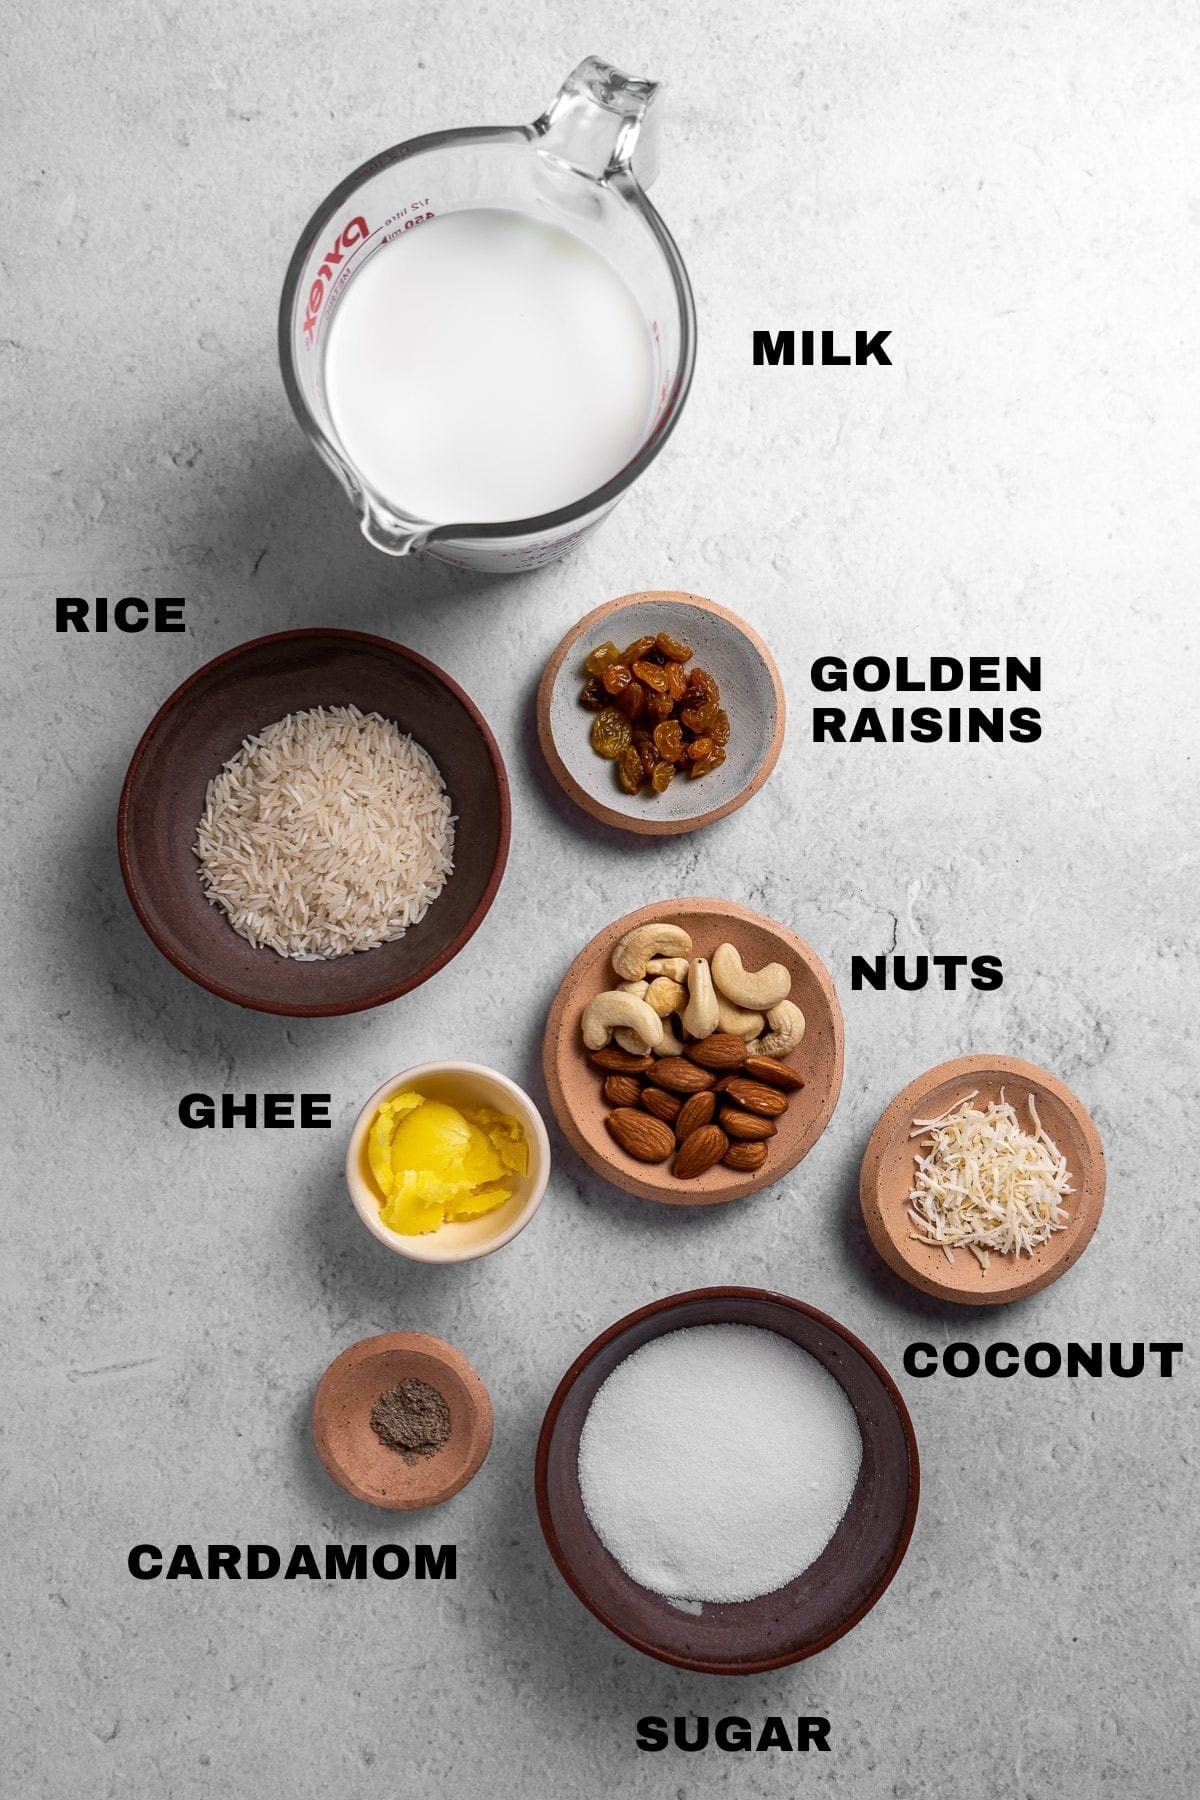 Rice Kheer Ingredients Flatlay with labels